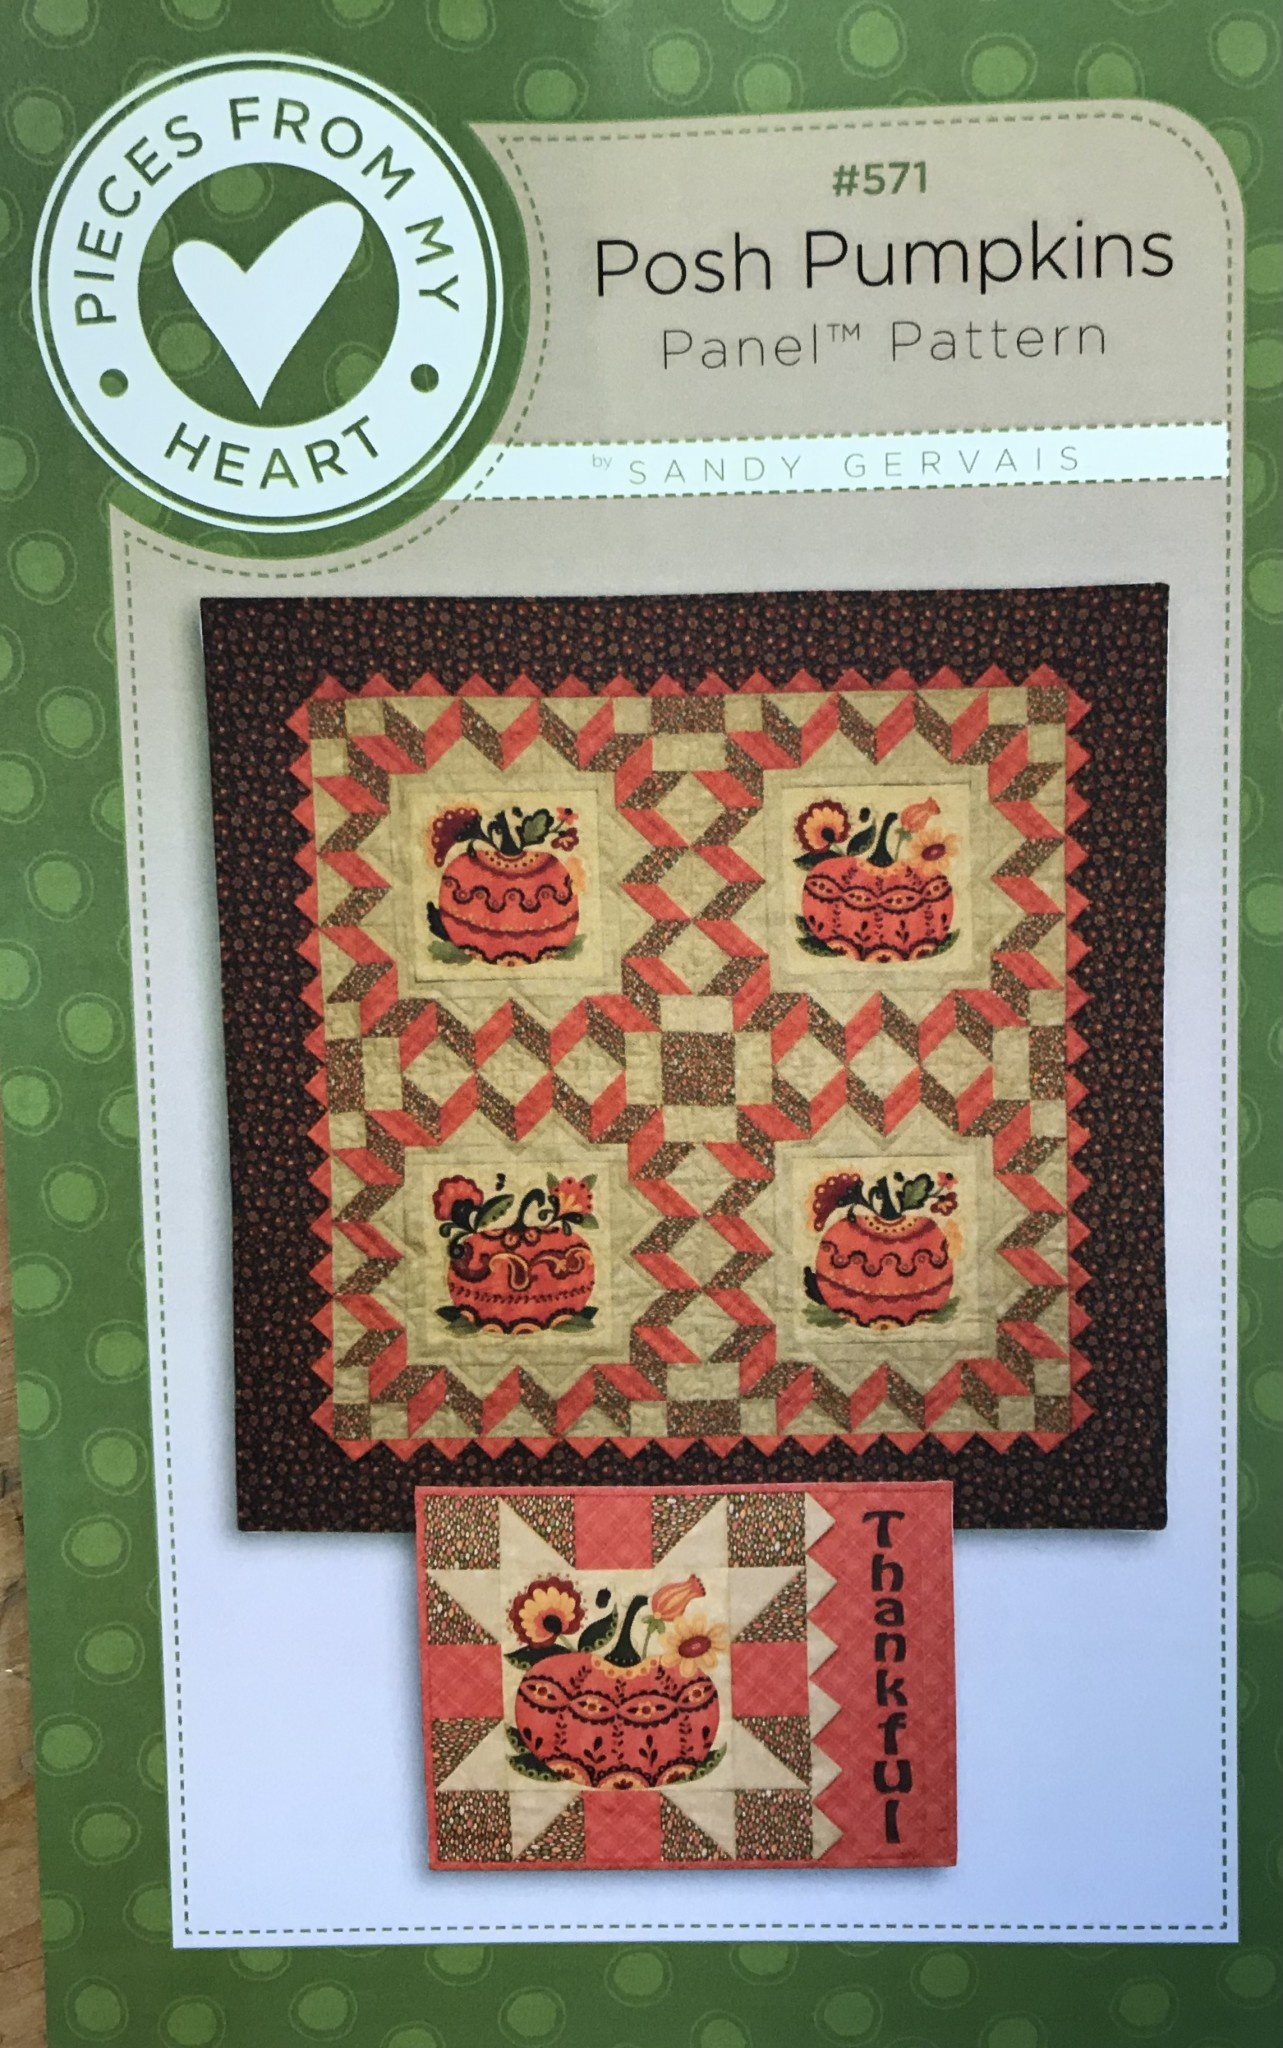 PIECES FROM MY HEART POSH PUMPKINS PANEL PATTERN